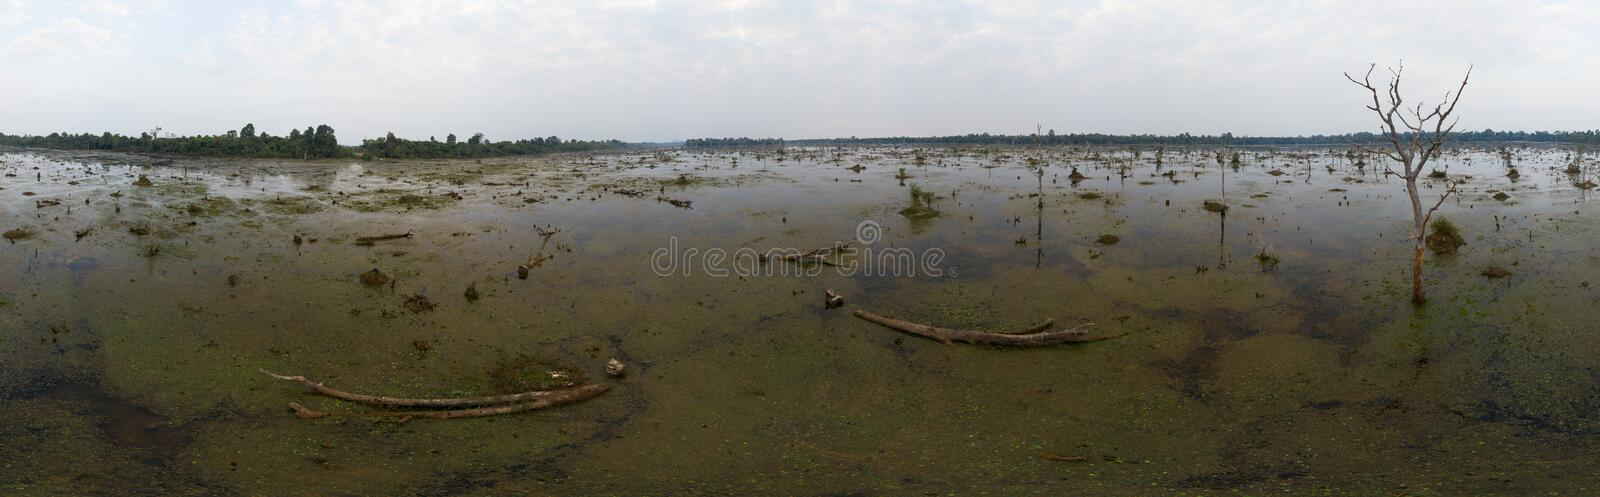 Lake with old trees sticking out of the water. 360 VR panorama drone shot. Cambodia near ancient Angkor Wat Temple Ruin royalty free stock photography